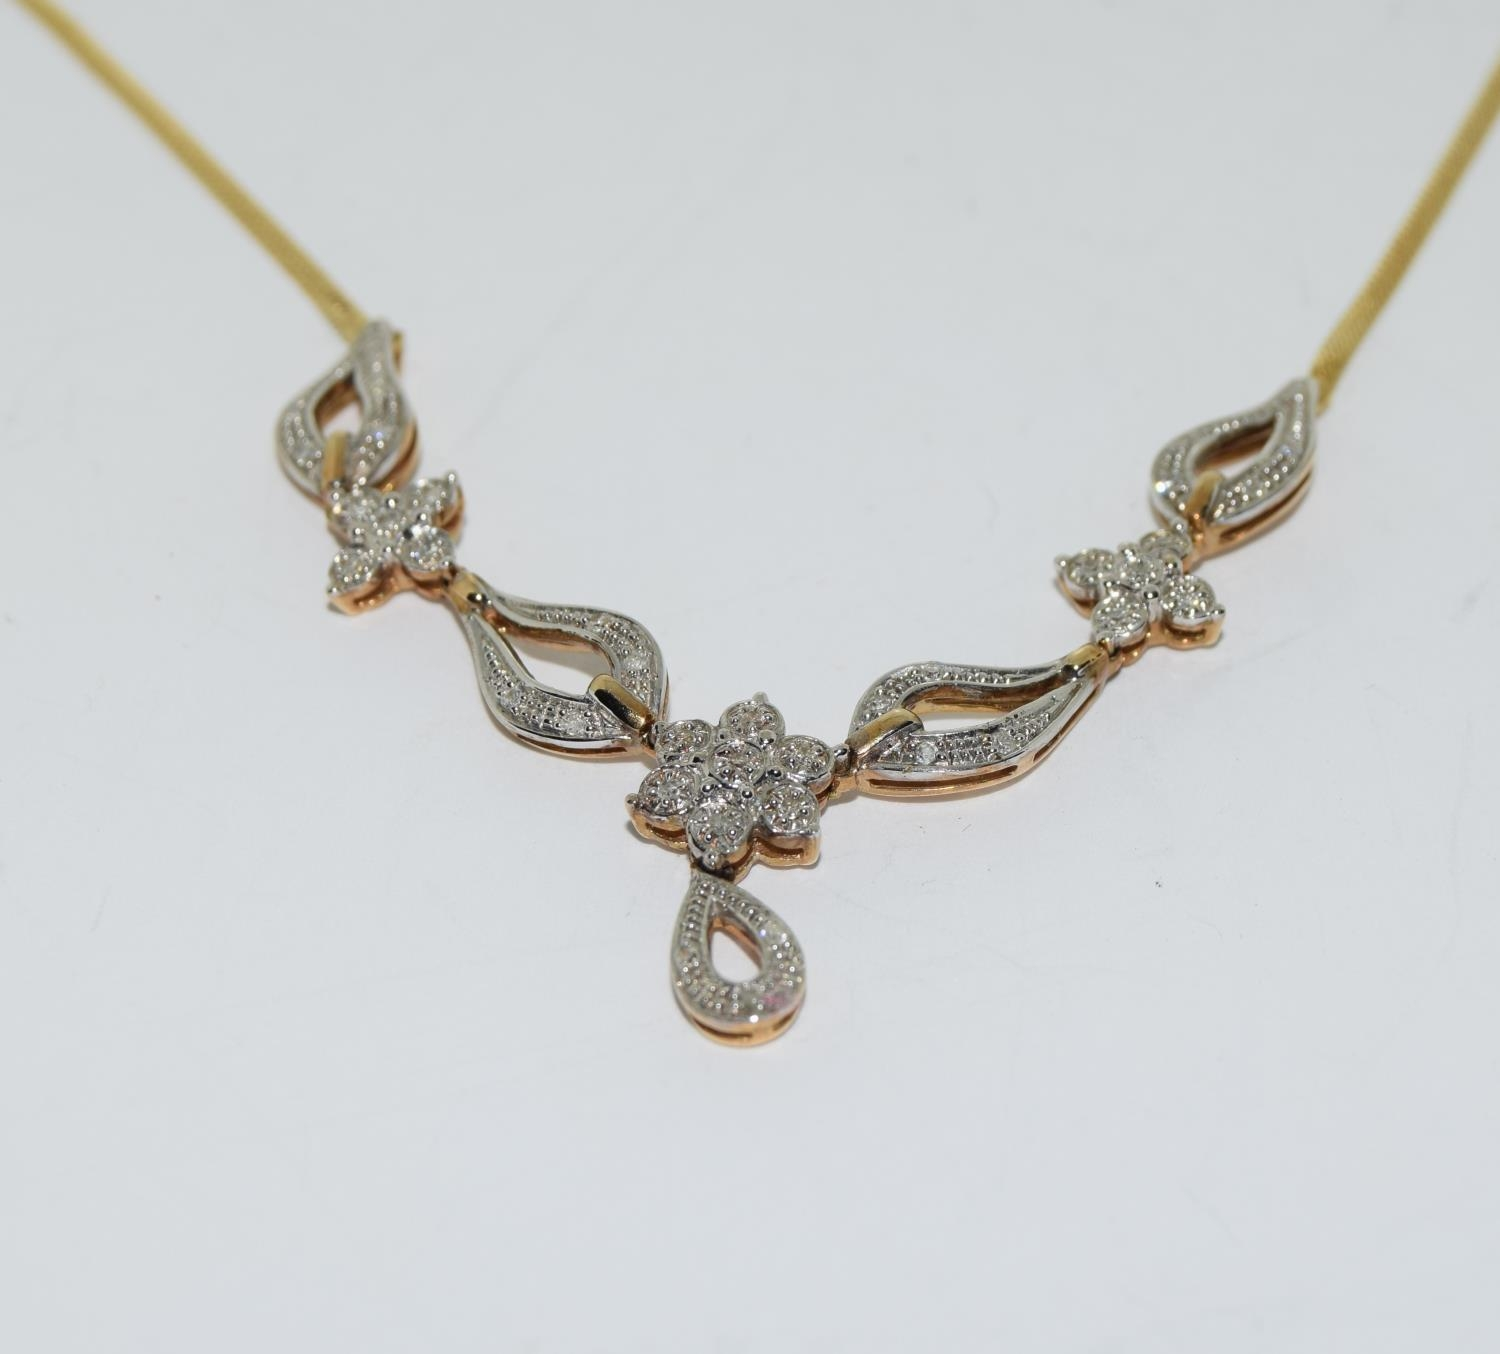 Diamond 9ct gold necklace, boxed - Image 2 of 5